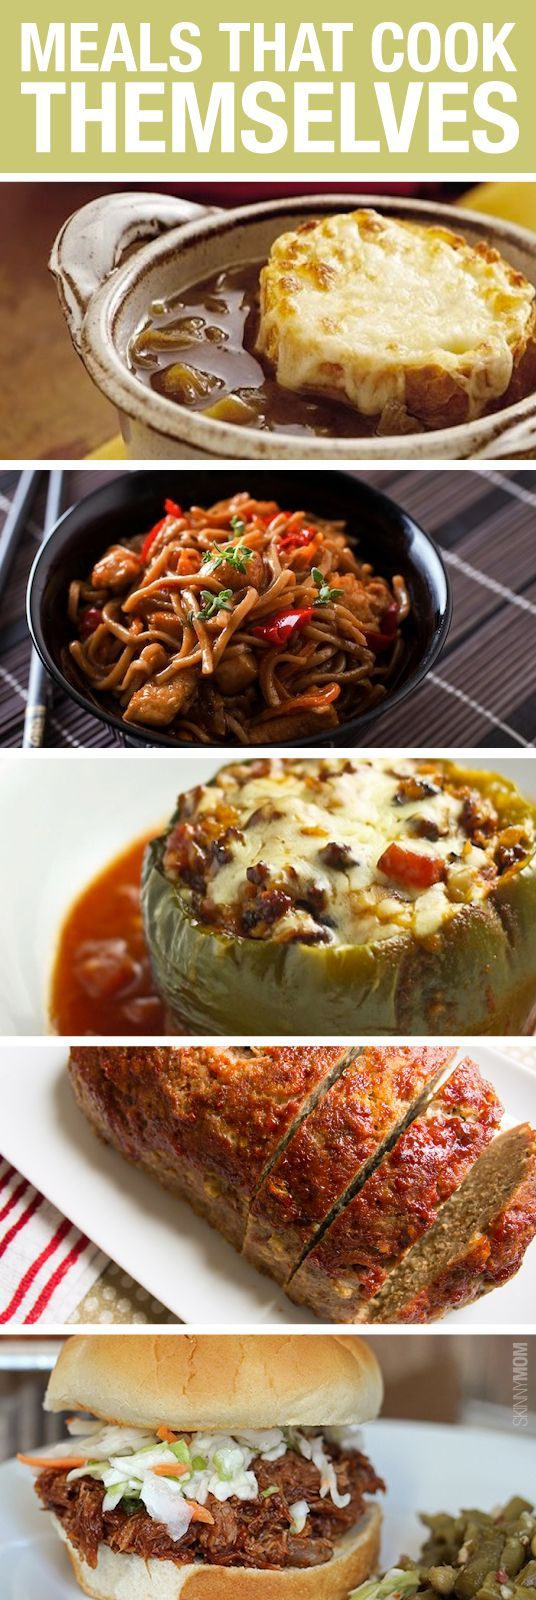 Quick slow cooker recipes you'll love!